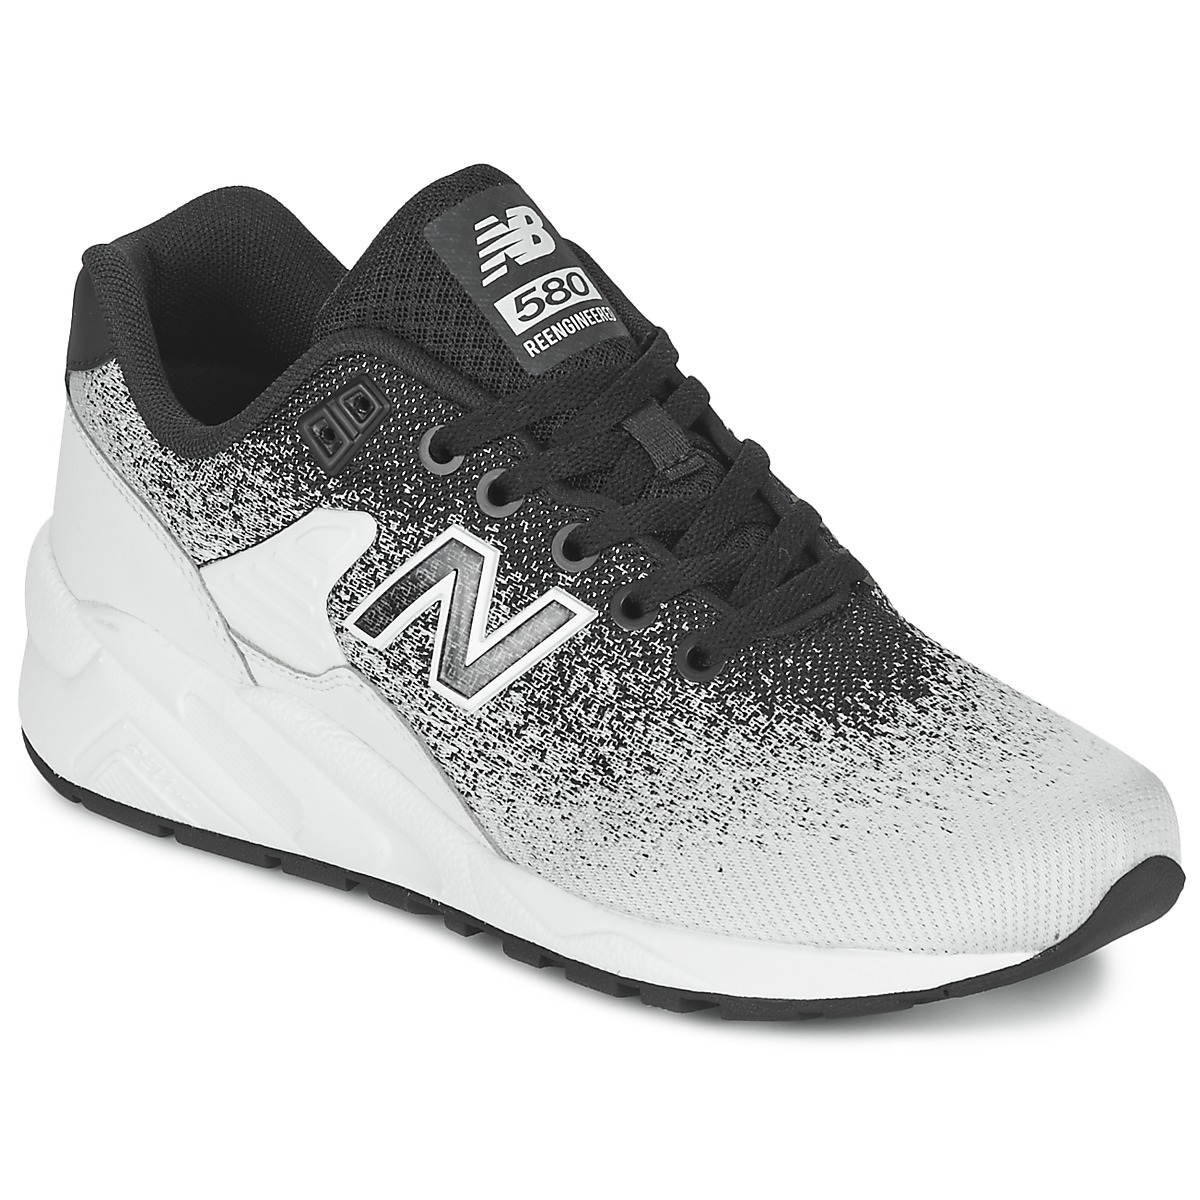 565 new balance Paris